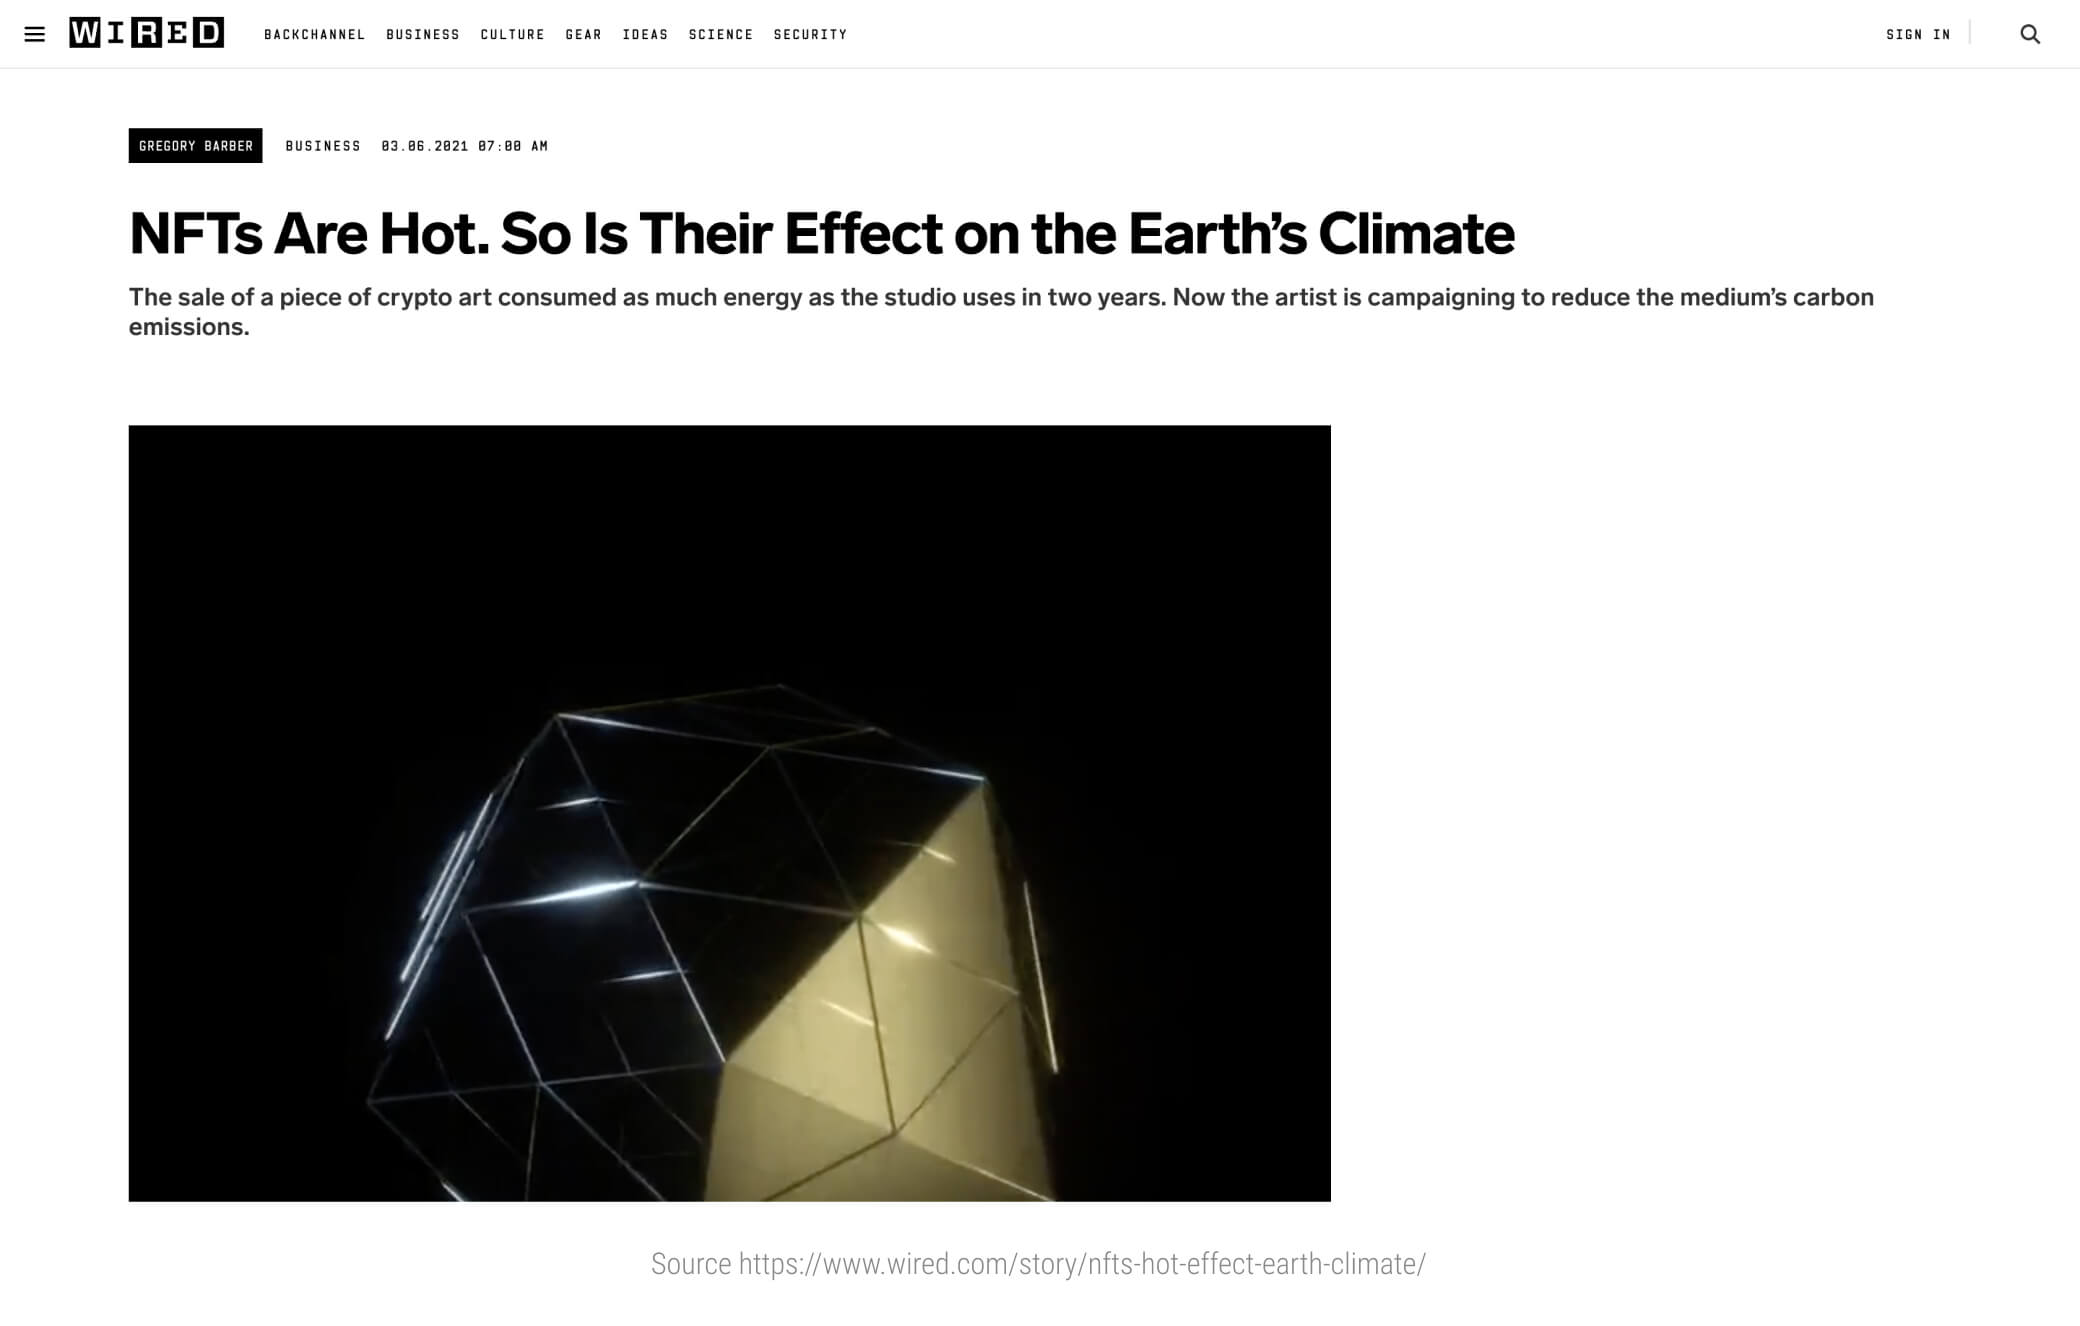 NFTs-Are-Hot.-So-Is-Their-Effect-on-the-Earth-s-Climate